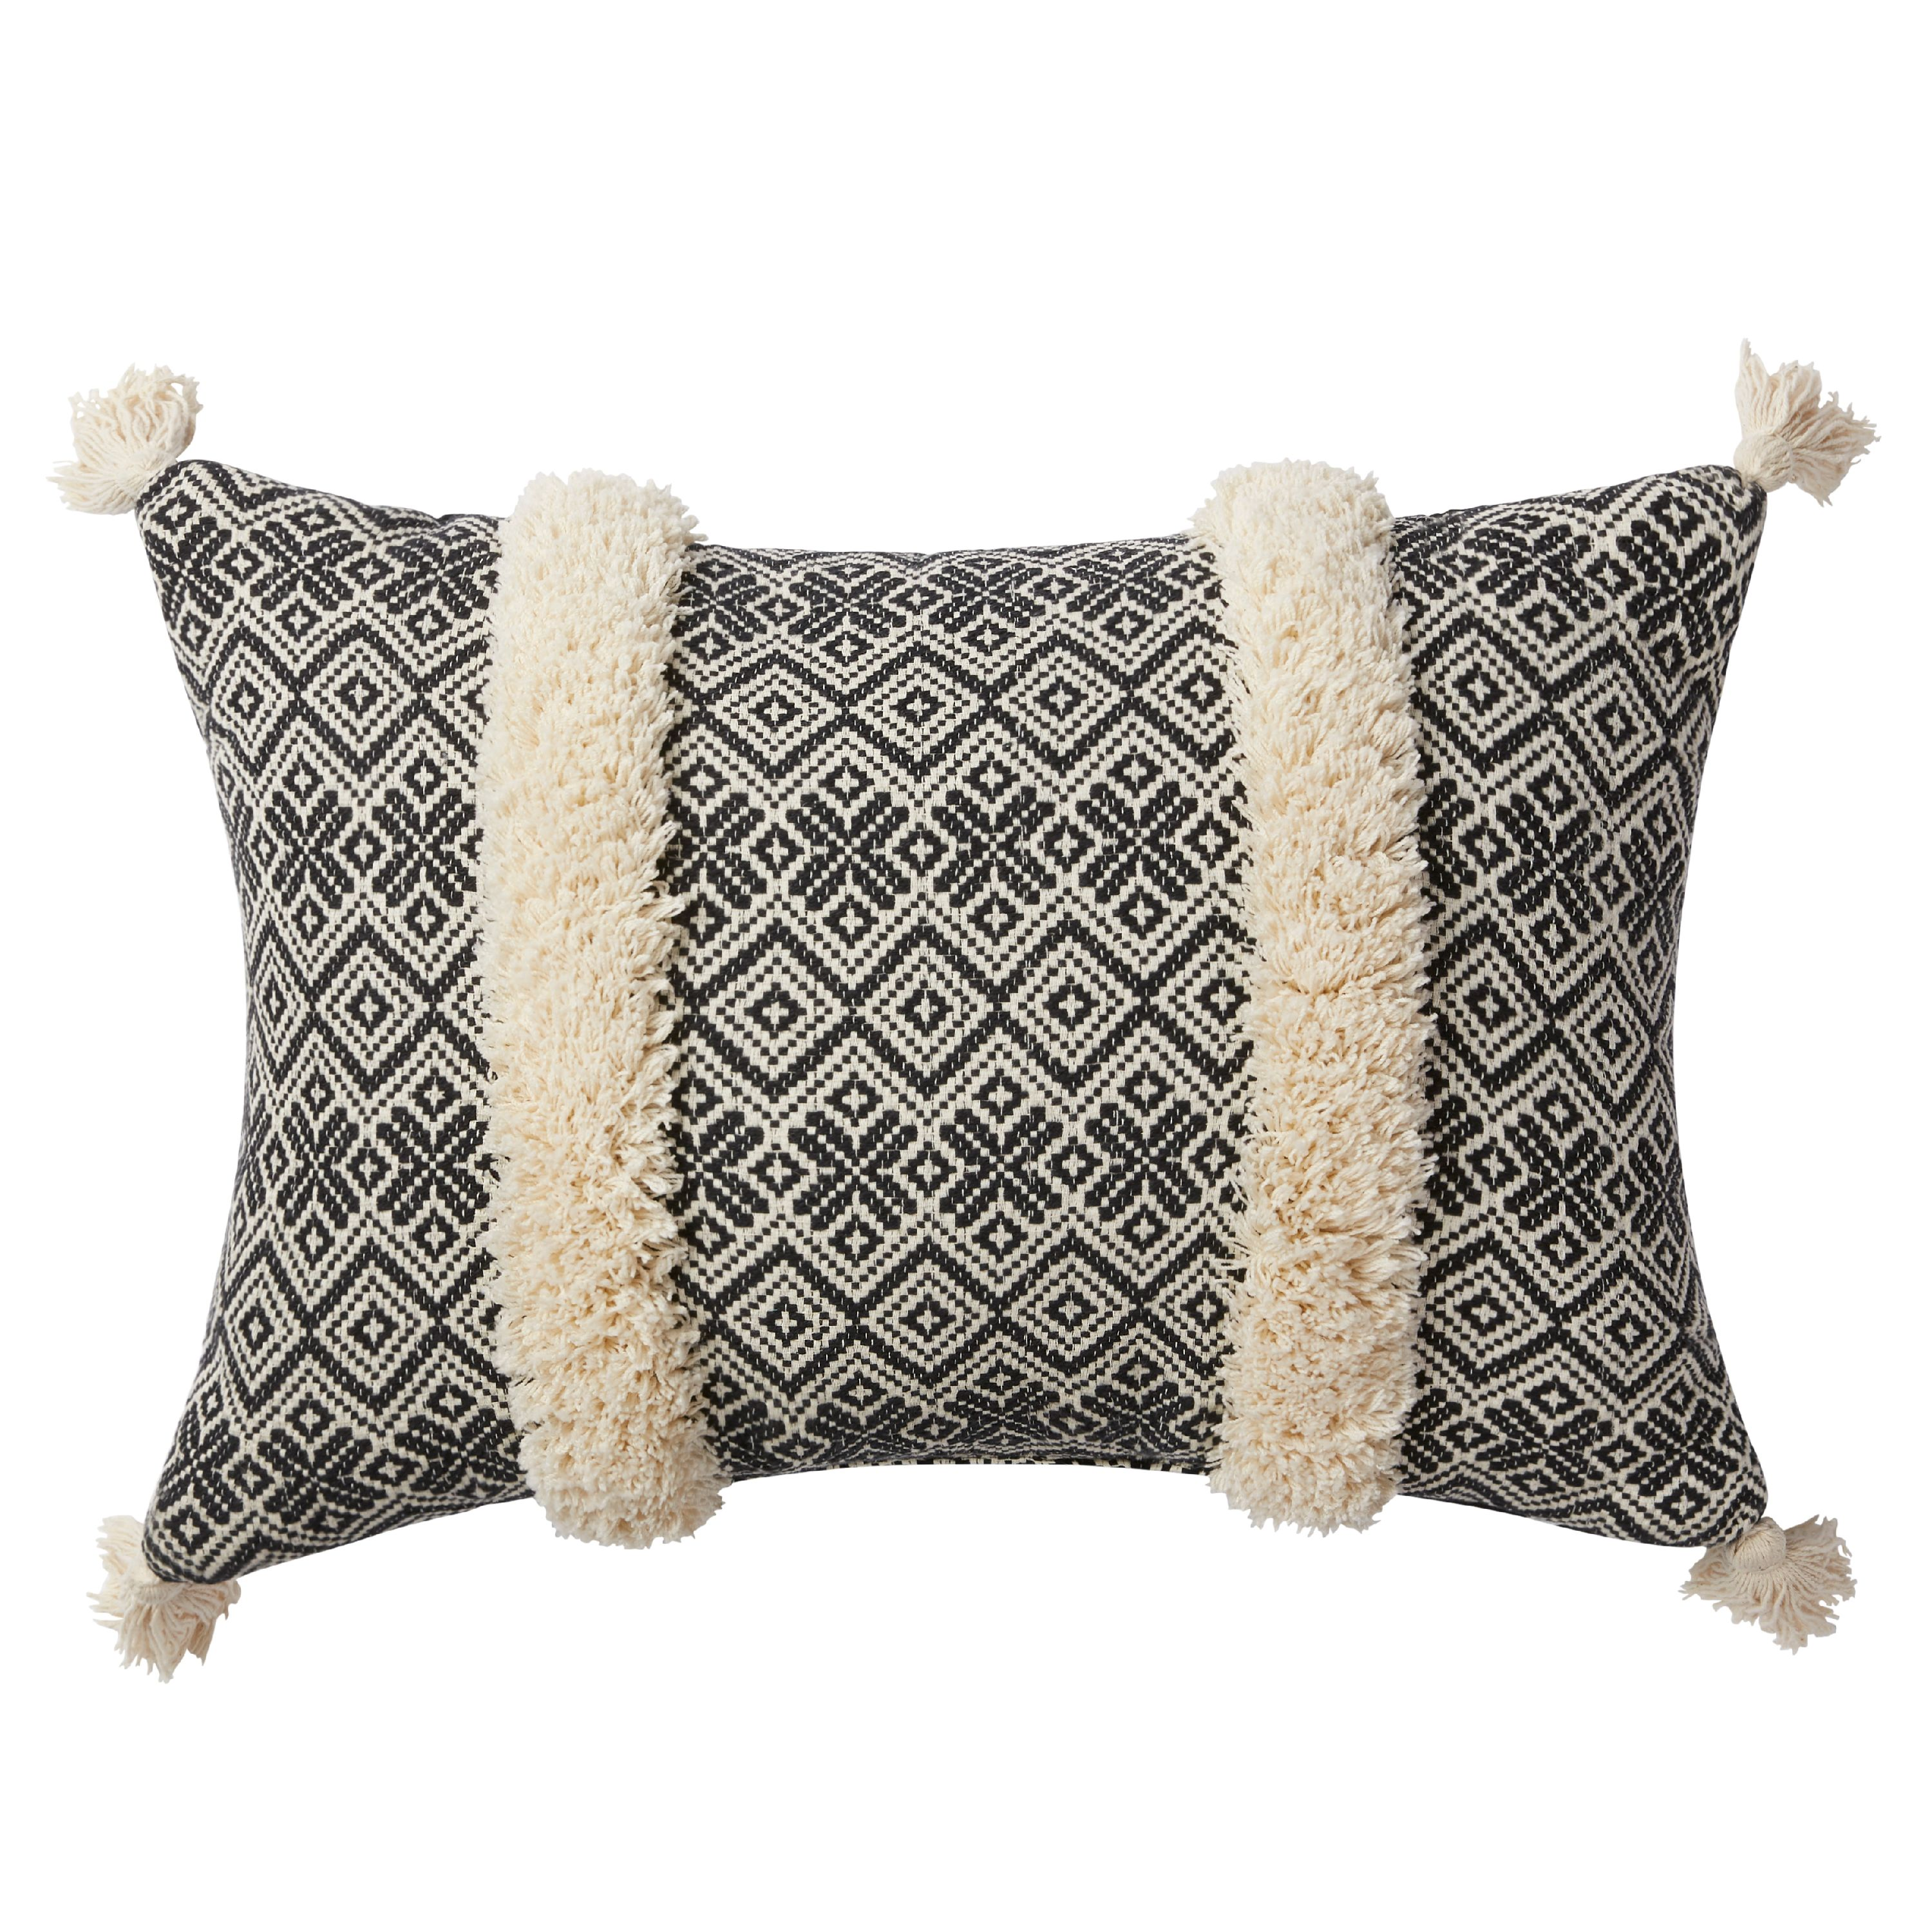 Better Homes and Gardens Handcrafted Jacquard Tufted Decorative Pillow